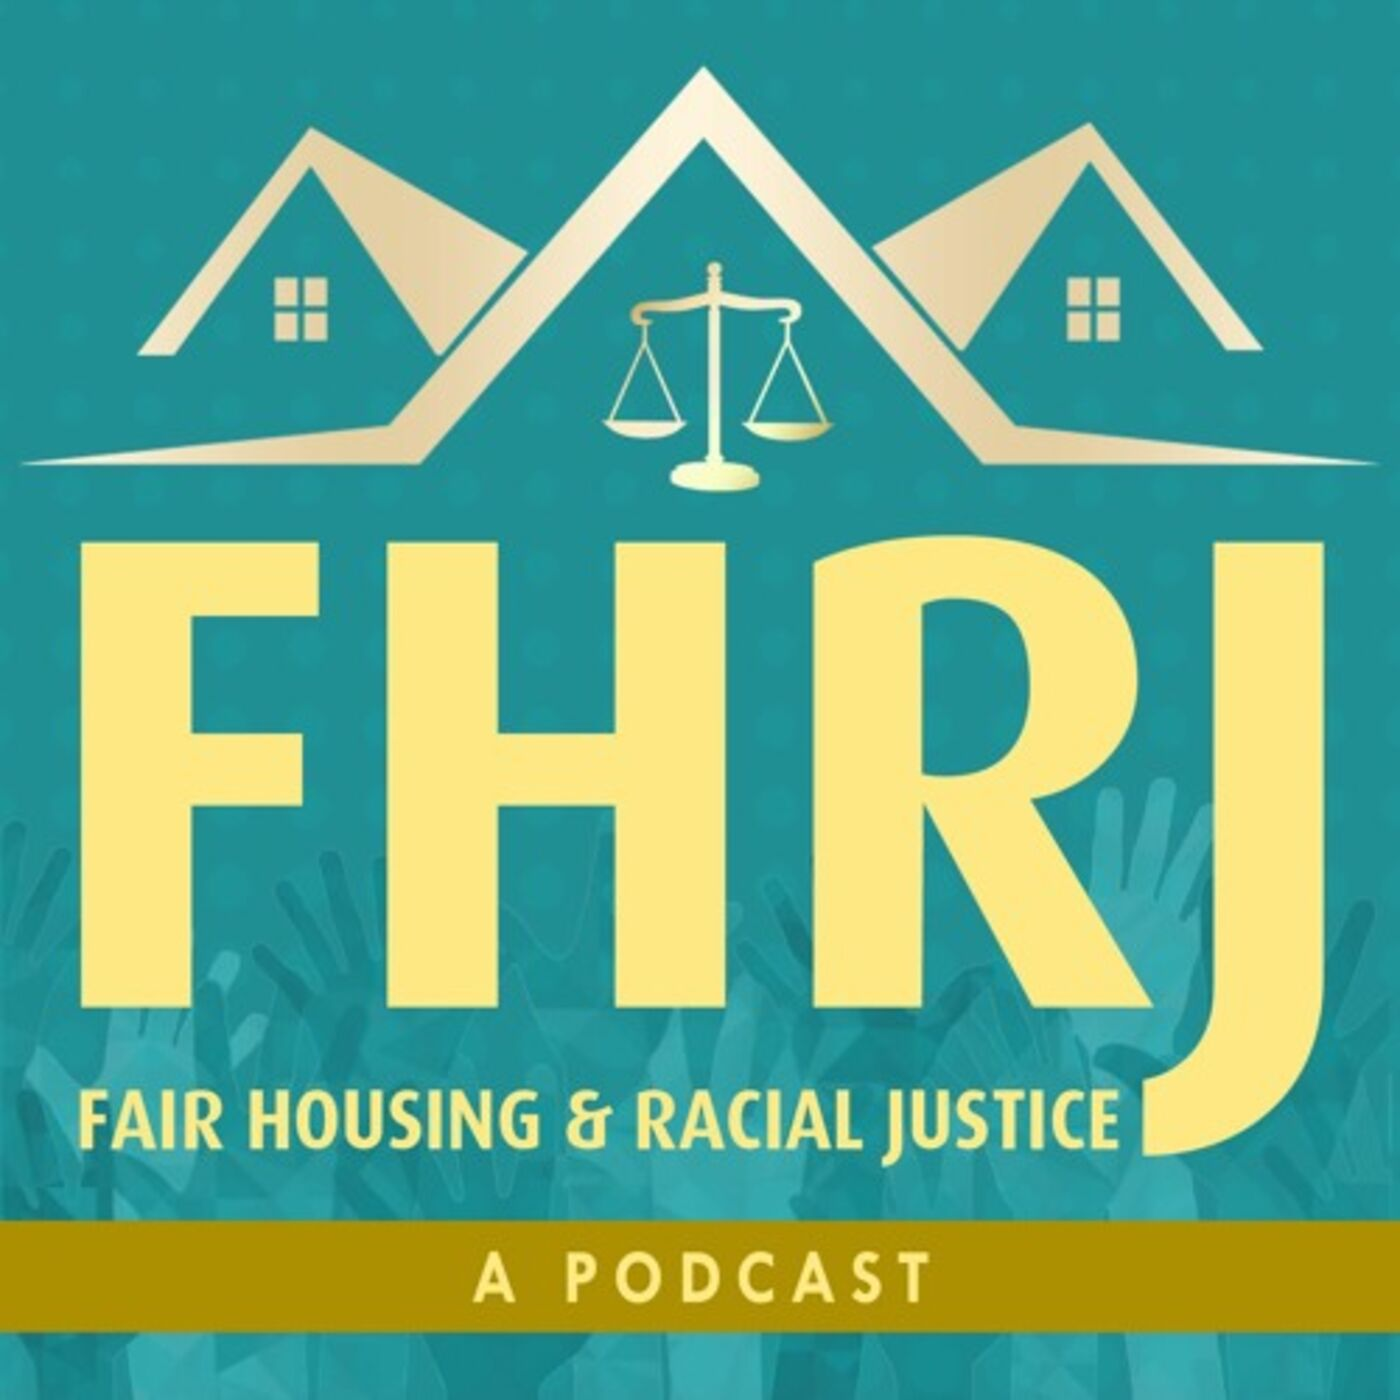 FHRJ 5: Asymmetrical Access - Jesse Van Tol on power imbalances that lead to wealth inequality